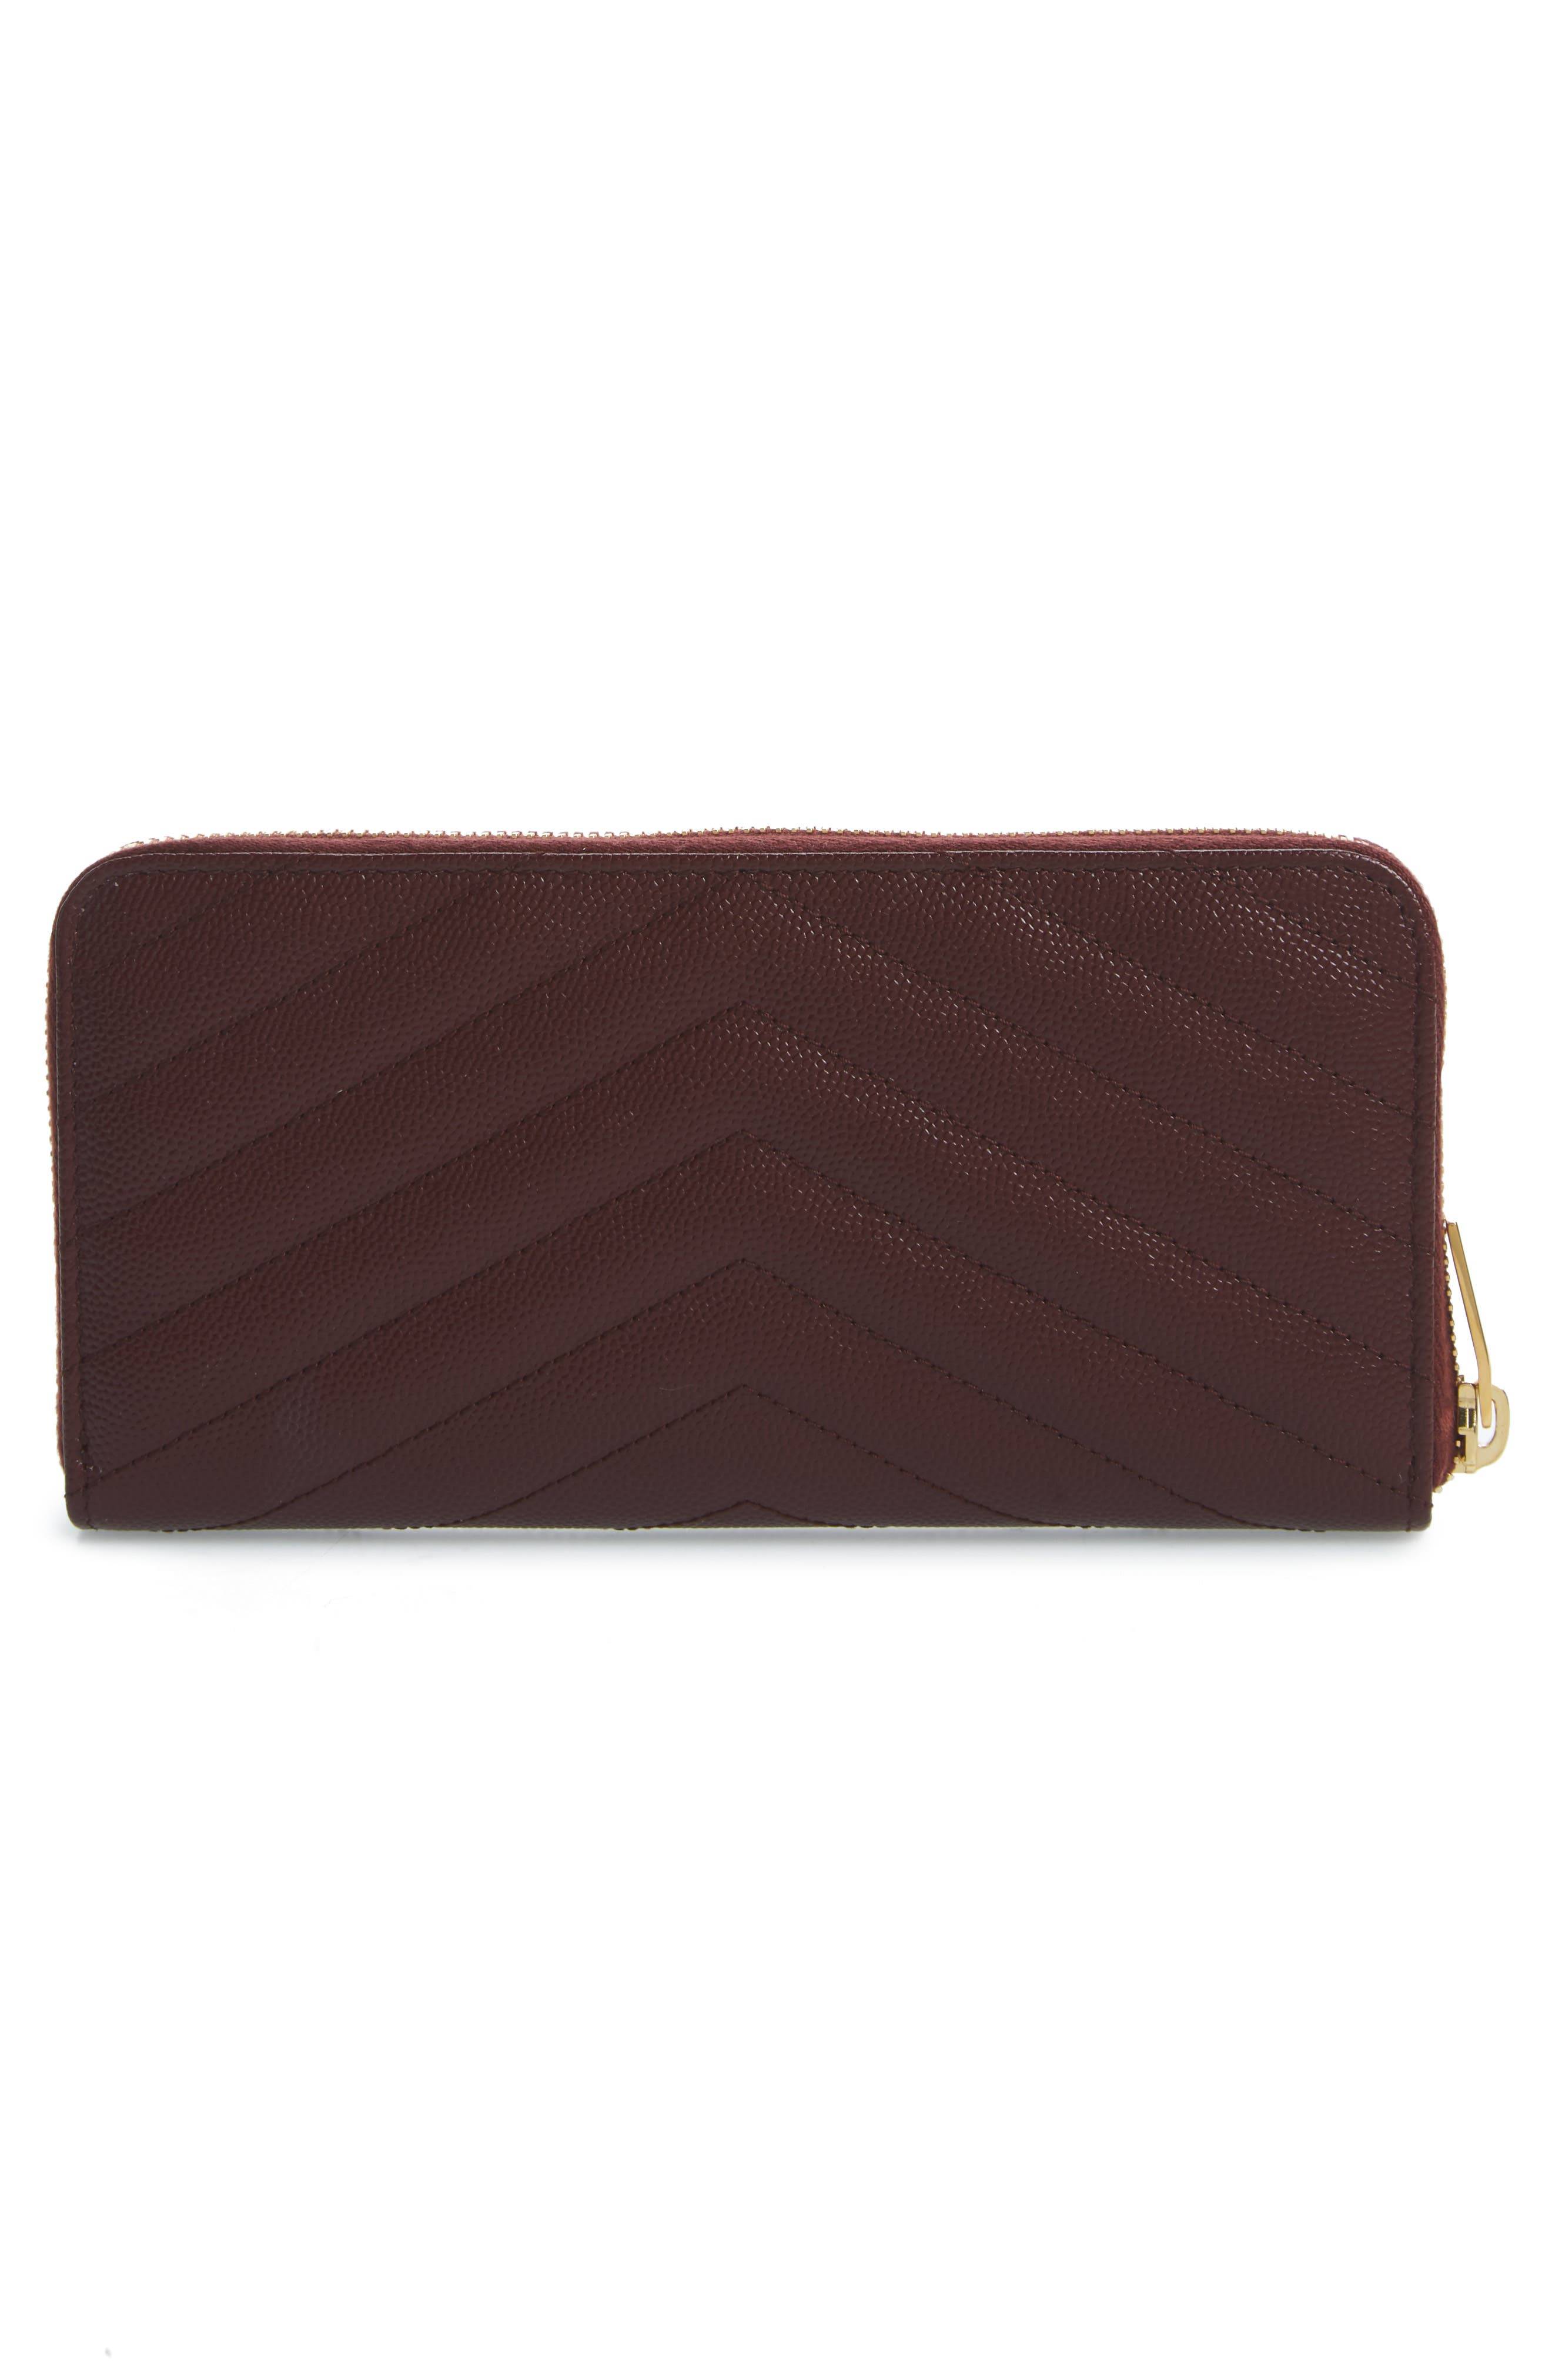 'Monogram' Quilted Leather Wallet,                             Alternate thumbnail 4, color,                             Rouge Legion